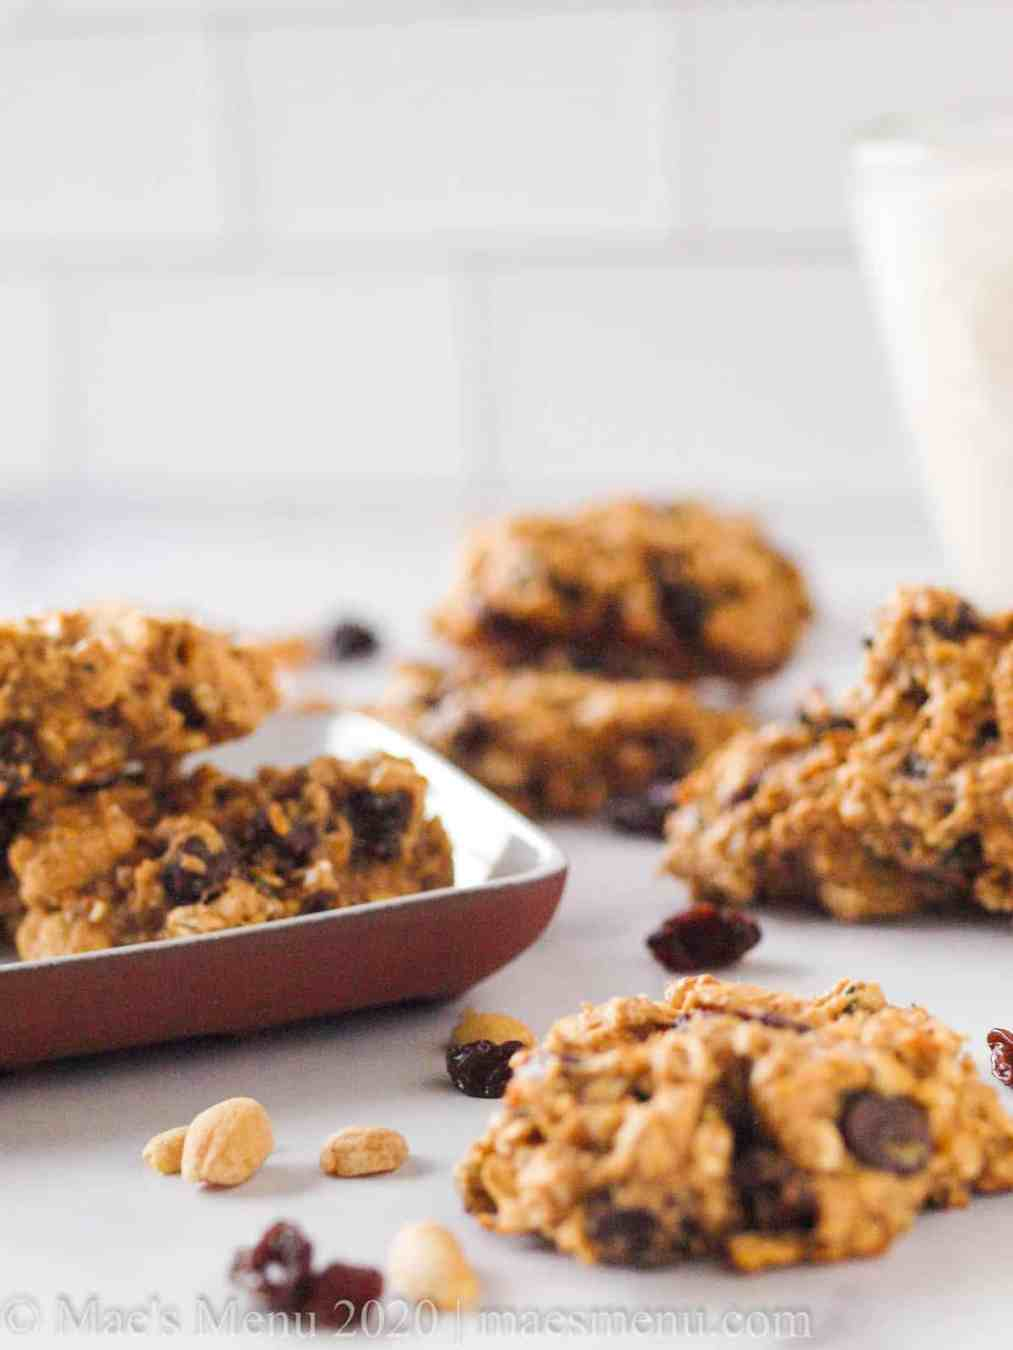 Oatmeal breakfast cookies on a table next to a small plate of cookies, raisins, and peanuts.